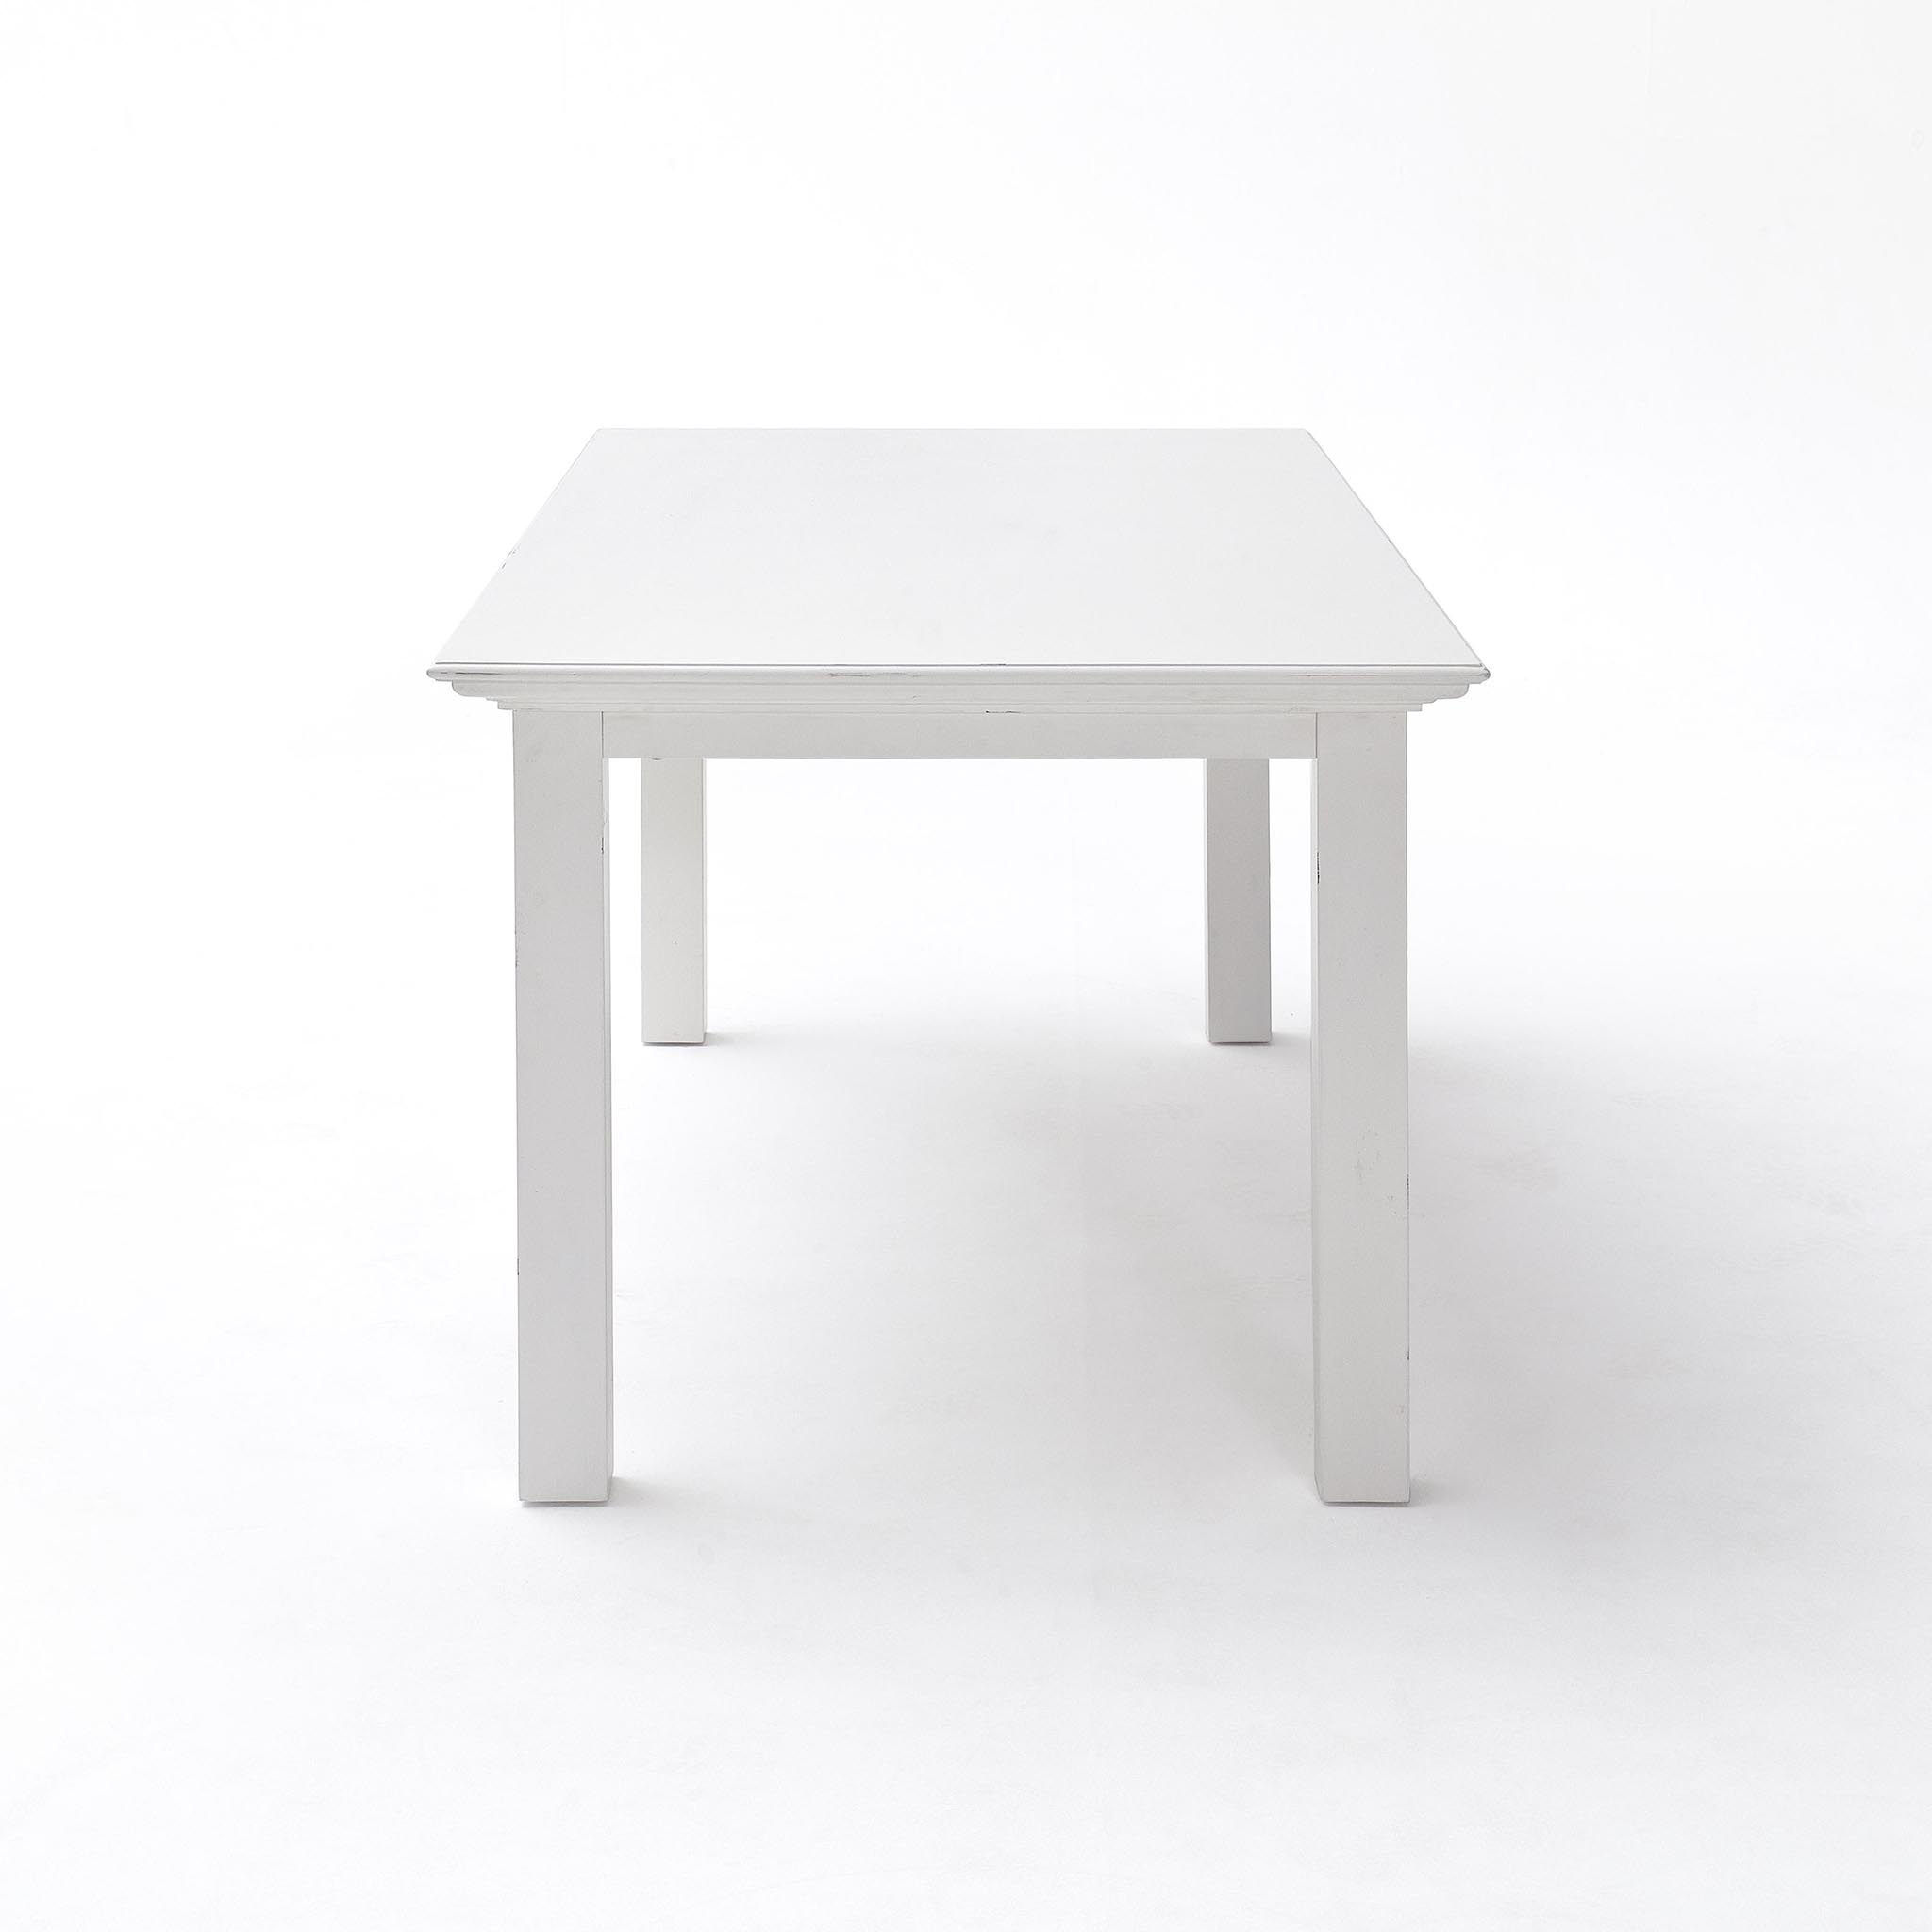 Minimalist Dining Table Home Furniture Manufacturer  : T7595 1 from www.baliexports.com size 2048 x 2048 jpeg 125kB